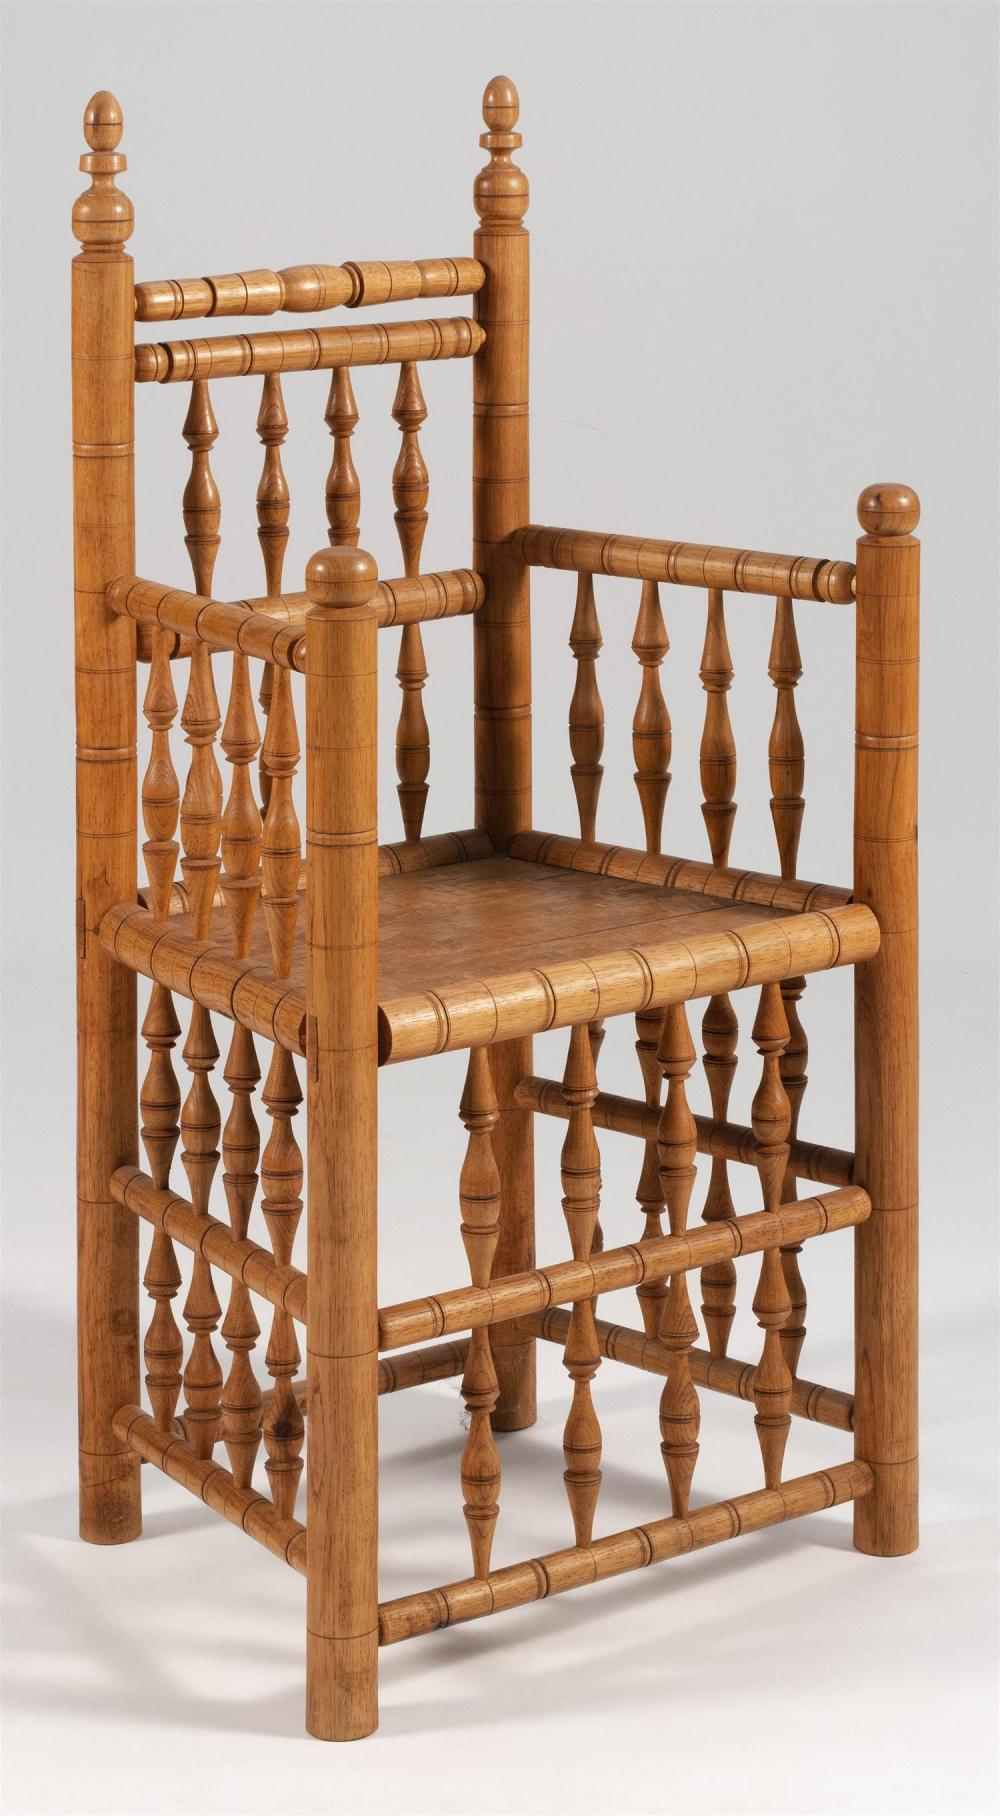 "PILGRIM-STYLE HARDWOOD ARMCHAIR Made by Heart of the Wood. Back height 48.25"". Seat height 21.5""."